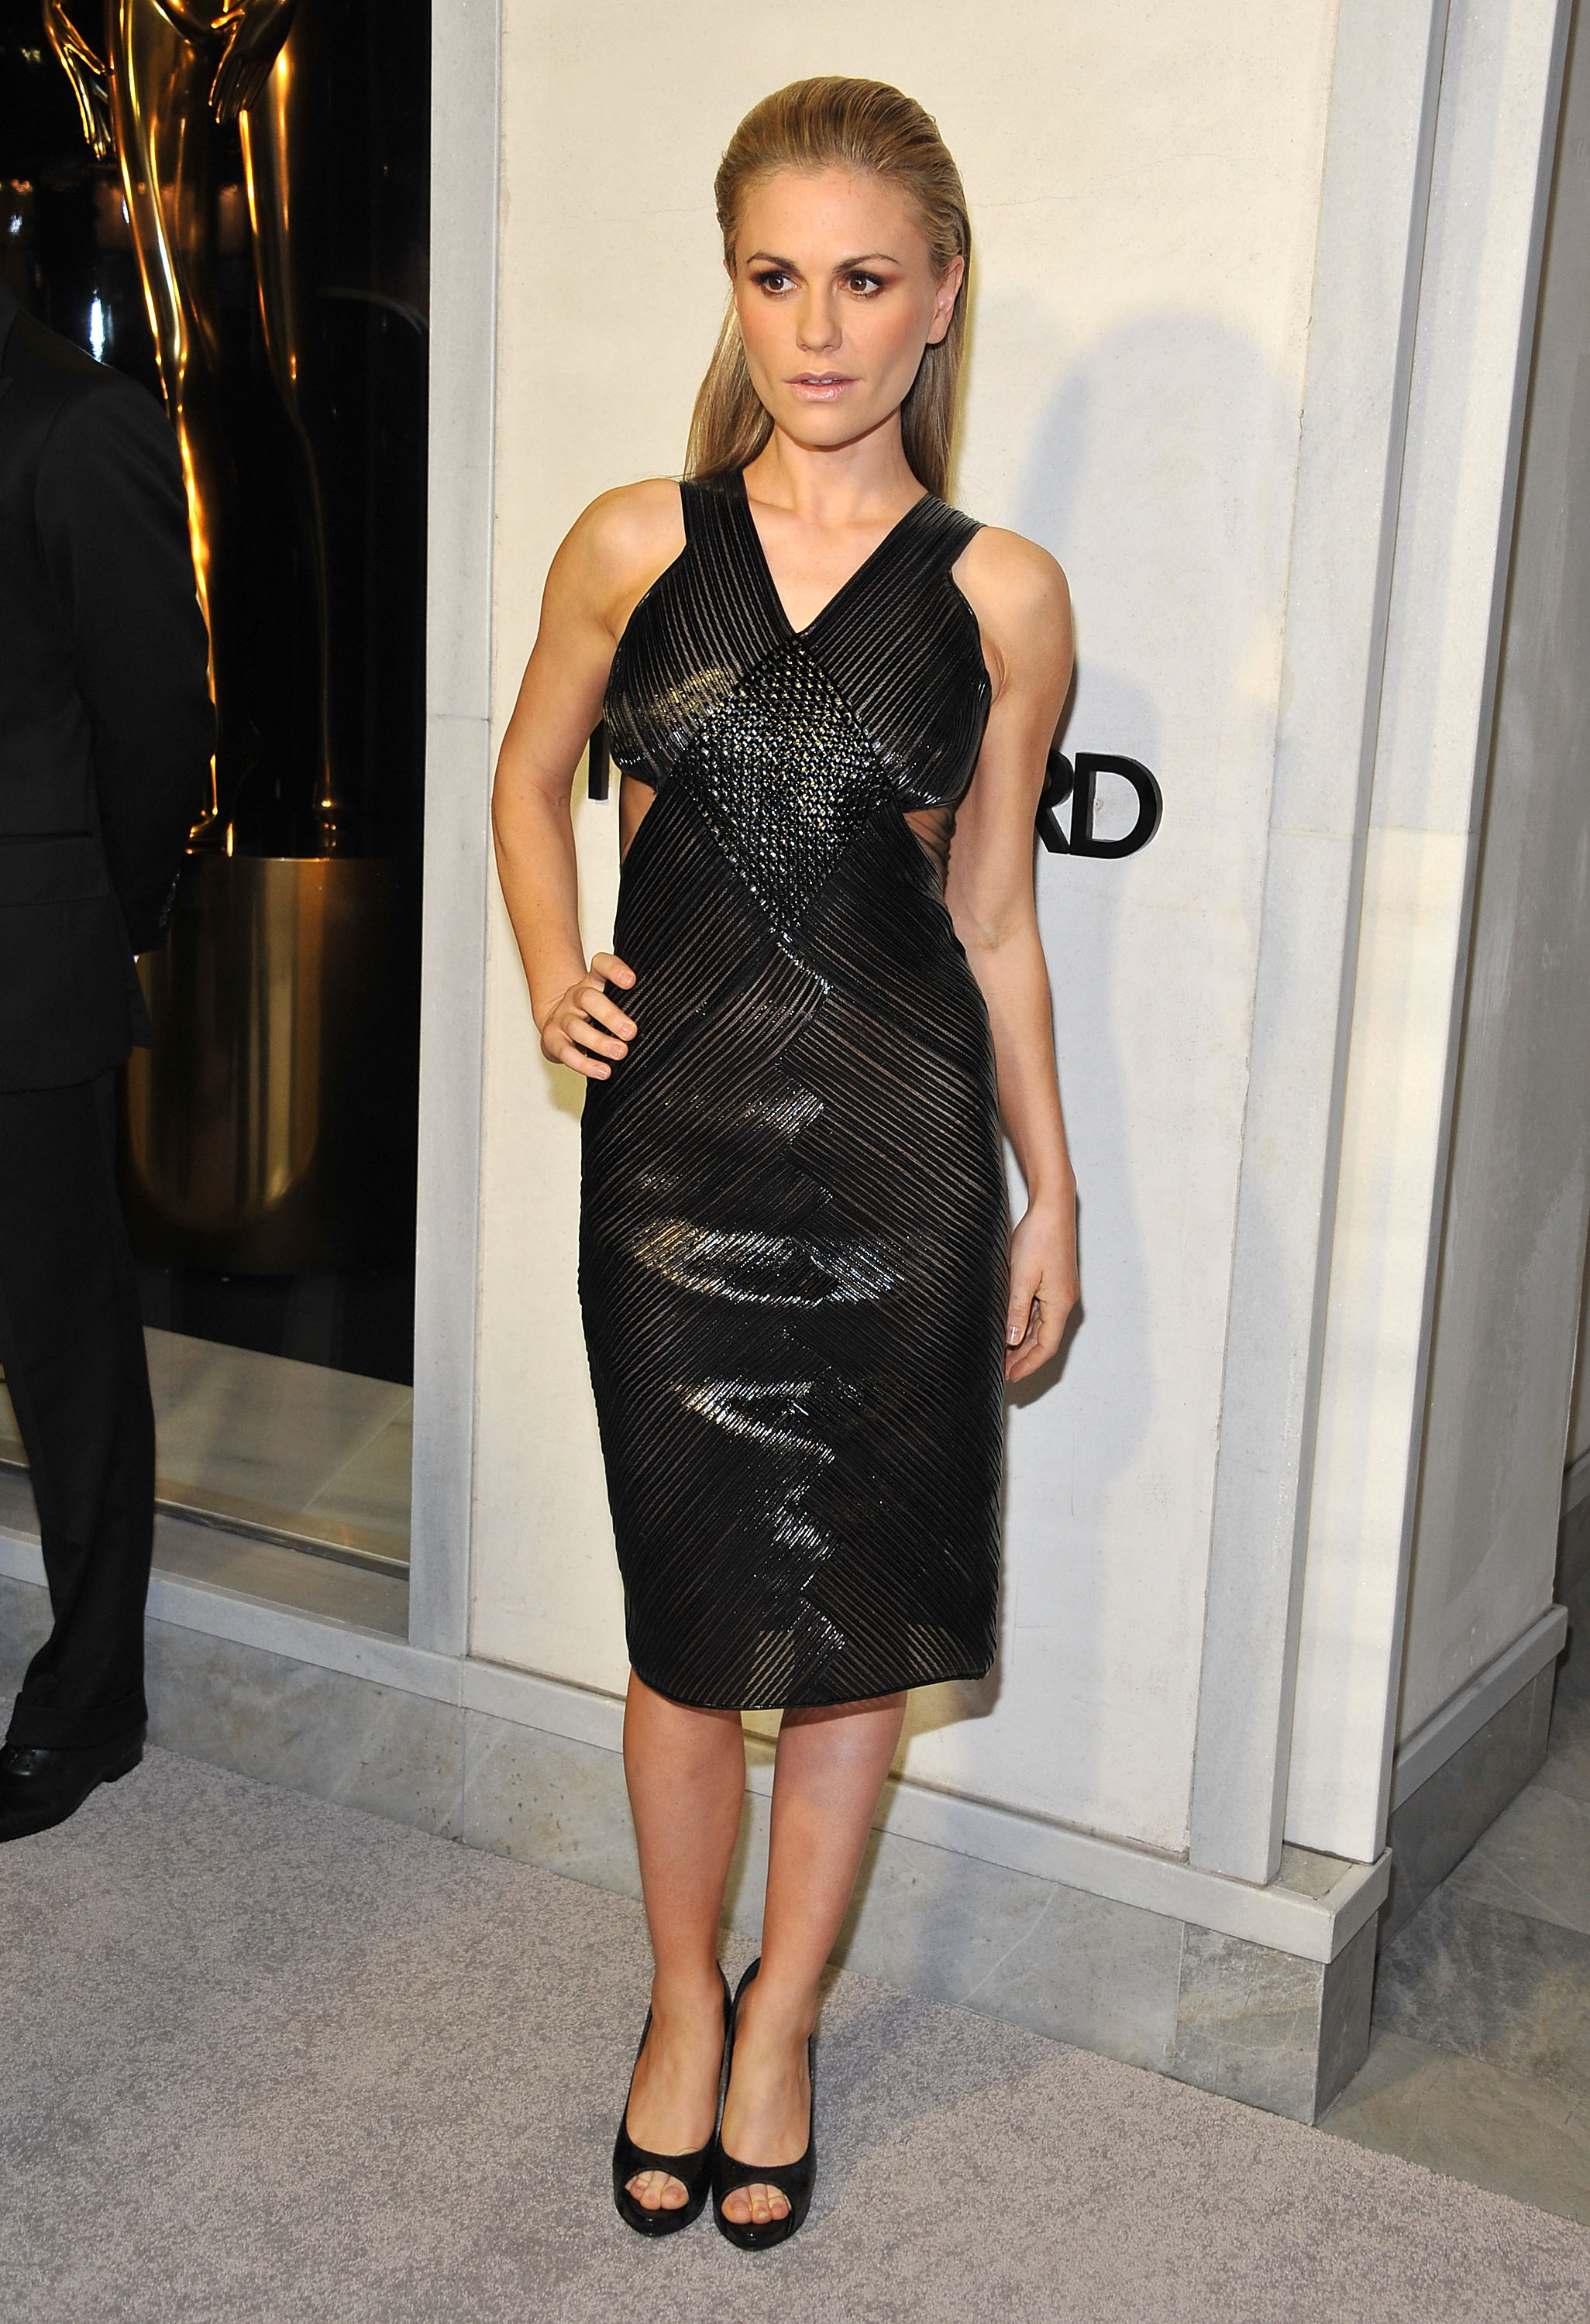 Anna Paquin at the Tom Ford cocktail party in Los Angeles.